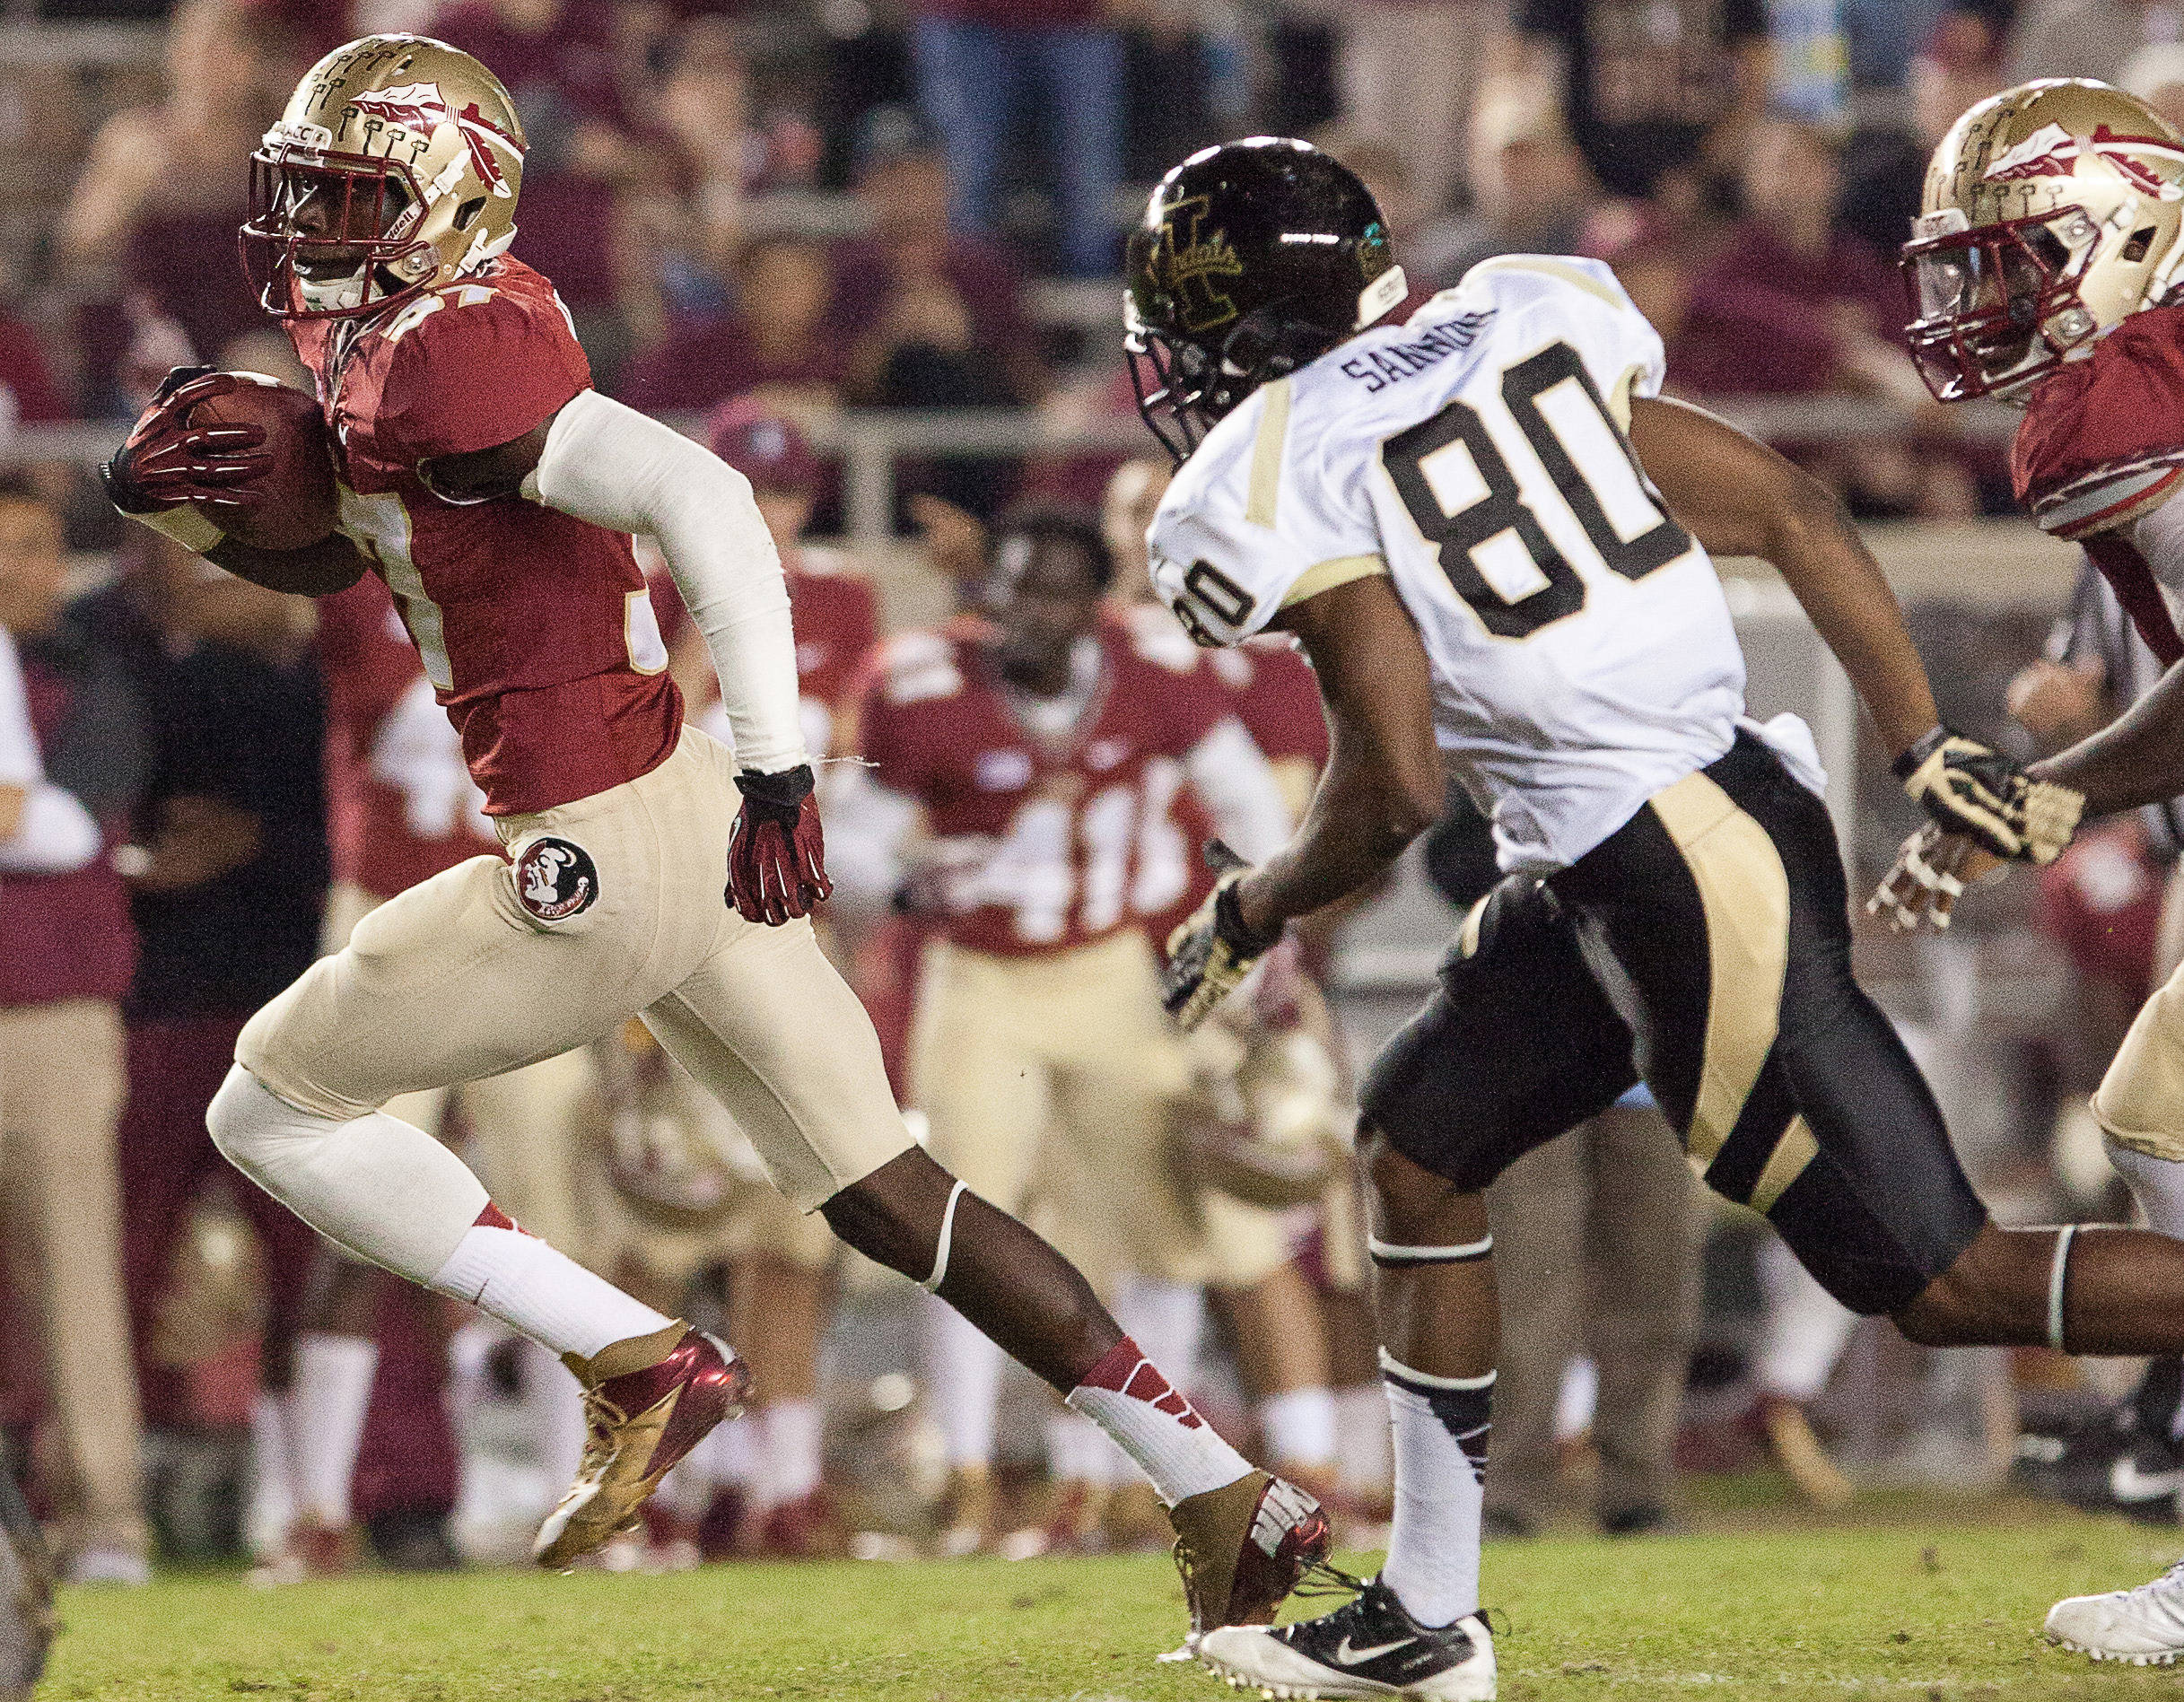 Keelin Smith (37) carries the ball after an interception during FSU Football's 80-14 victory over Idaho in Tallahassee, Fla on Saturday, November 23, 2013. Photos by Mike Schwarz.